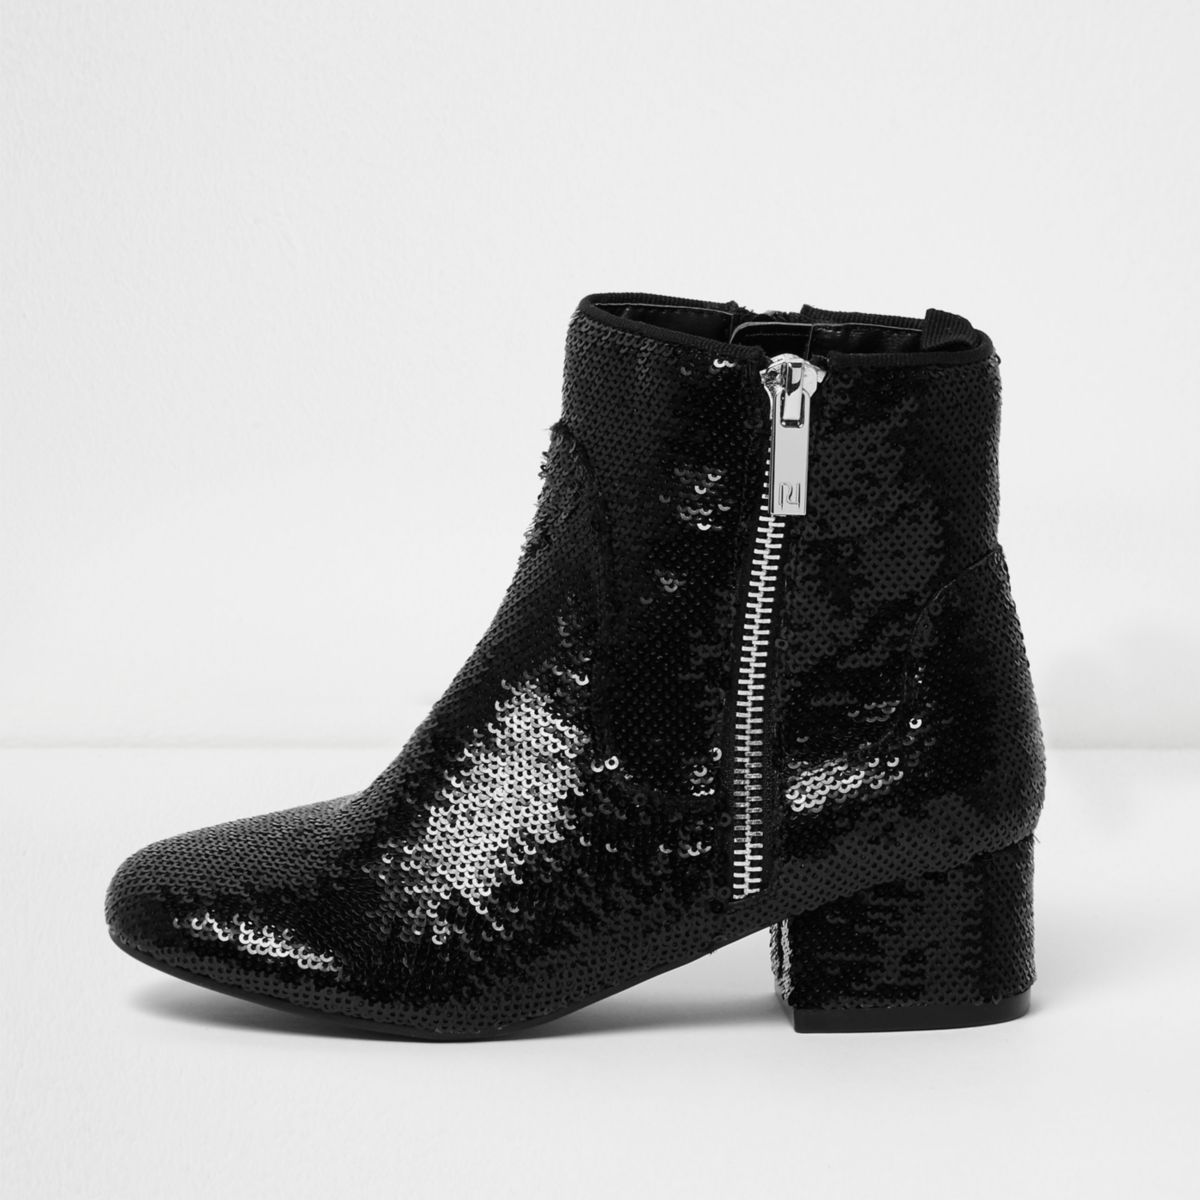 Girls black sequin embellished ankle boots